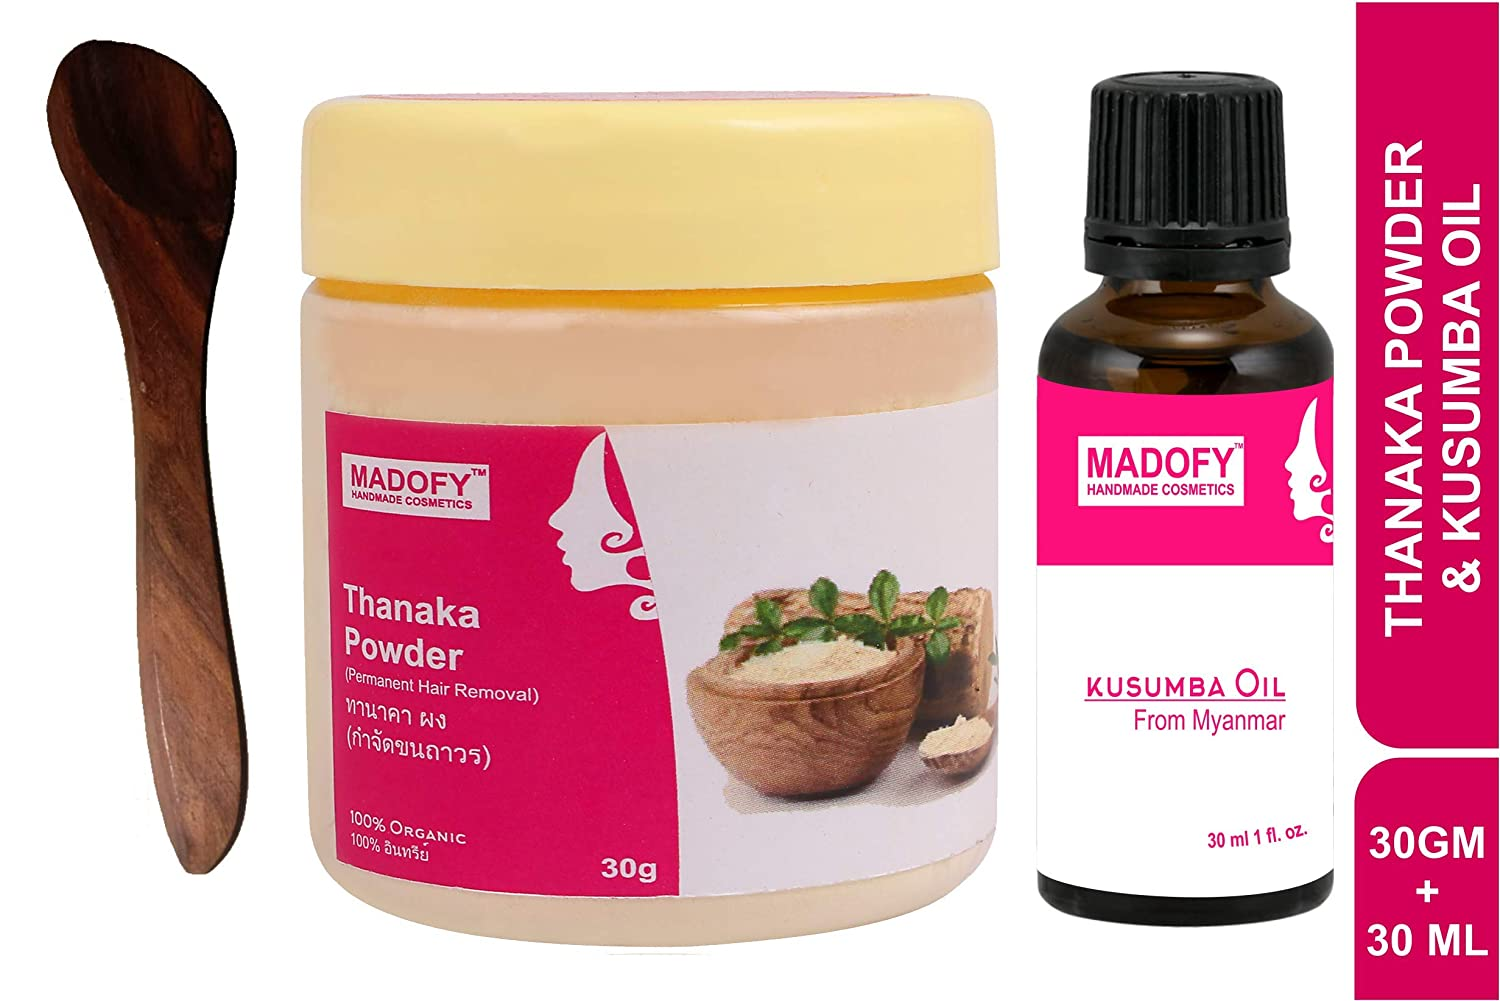 Madofy Grade a pure natural thanaka (tanaka) powder 30gm kusumba oil 30ml for permanent hair removal, anti aging,acne,blemish, skin whitening, soft smooth skin face scrub, sunscreen, face mask